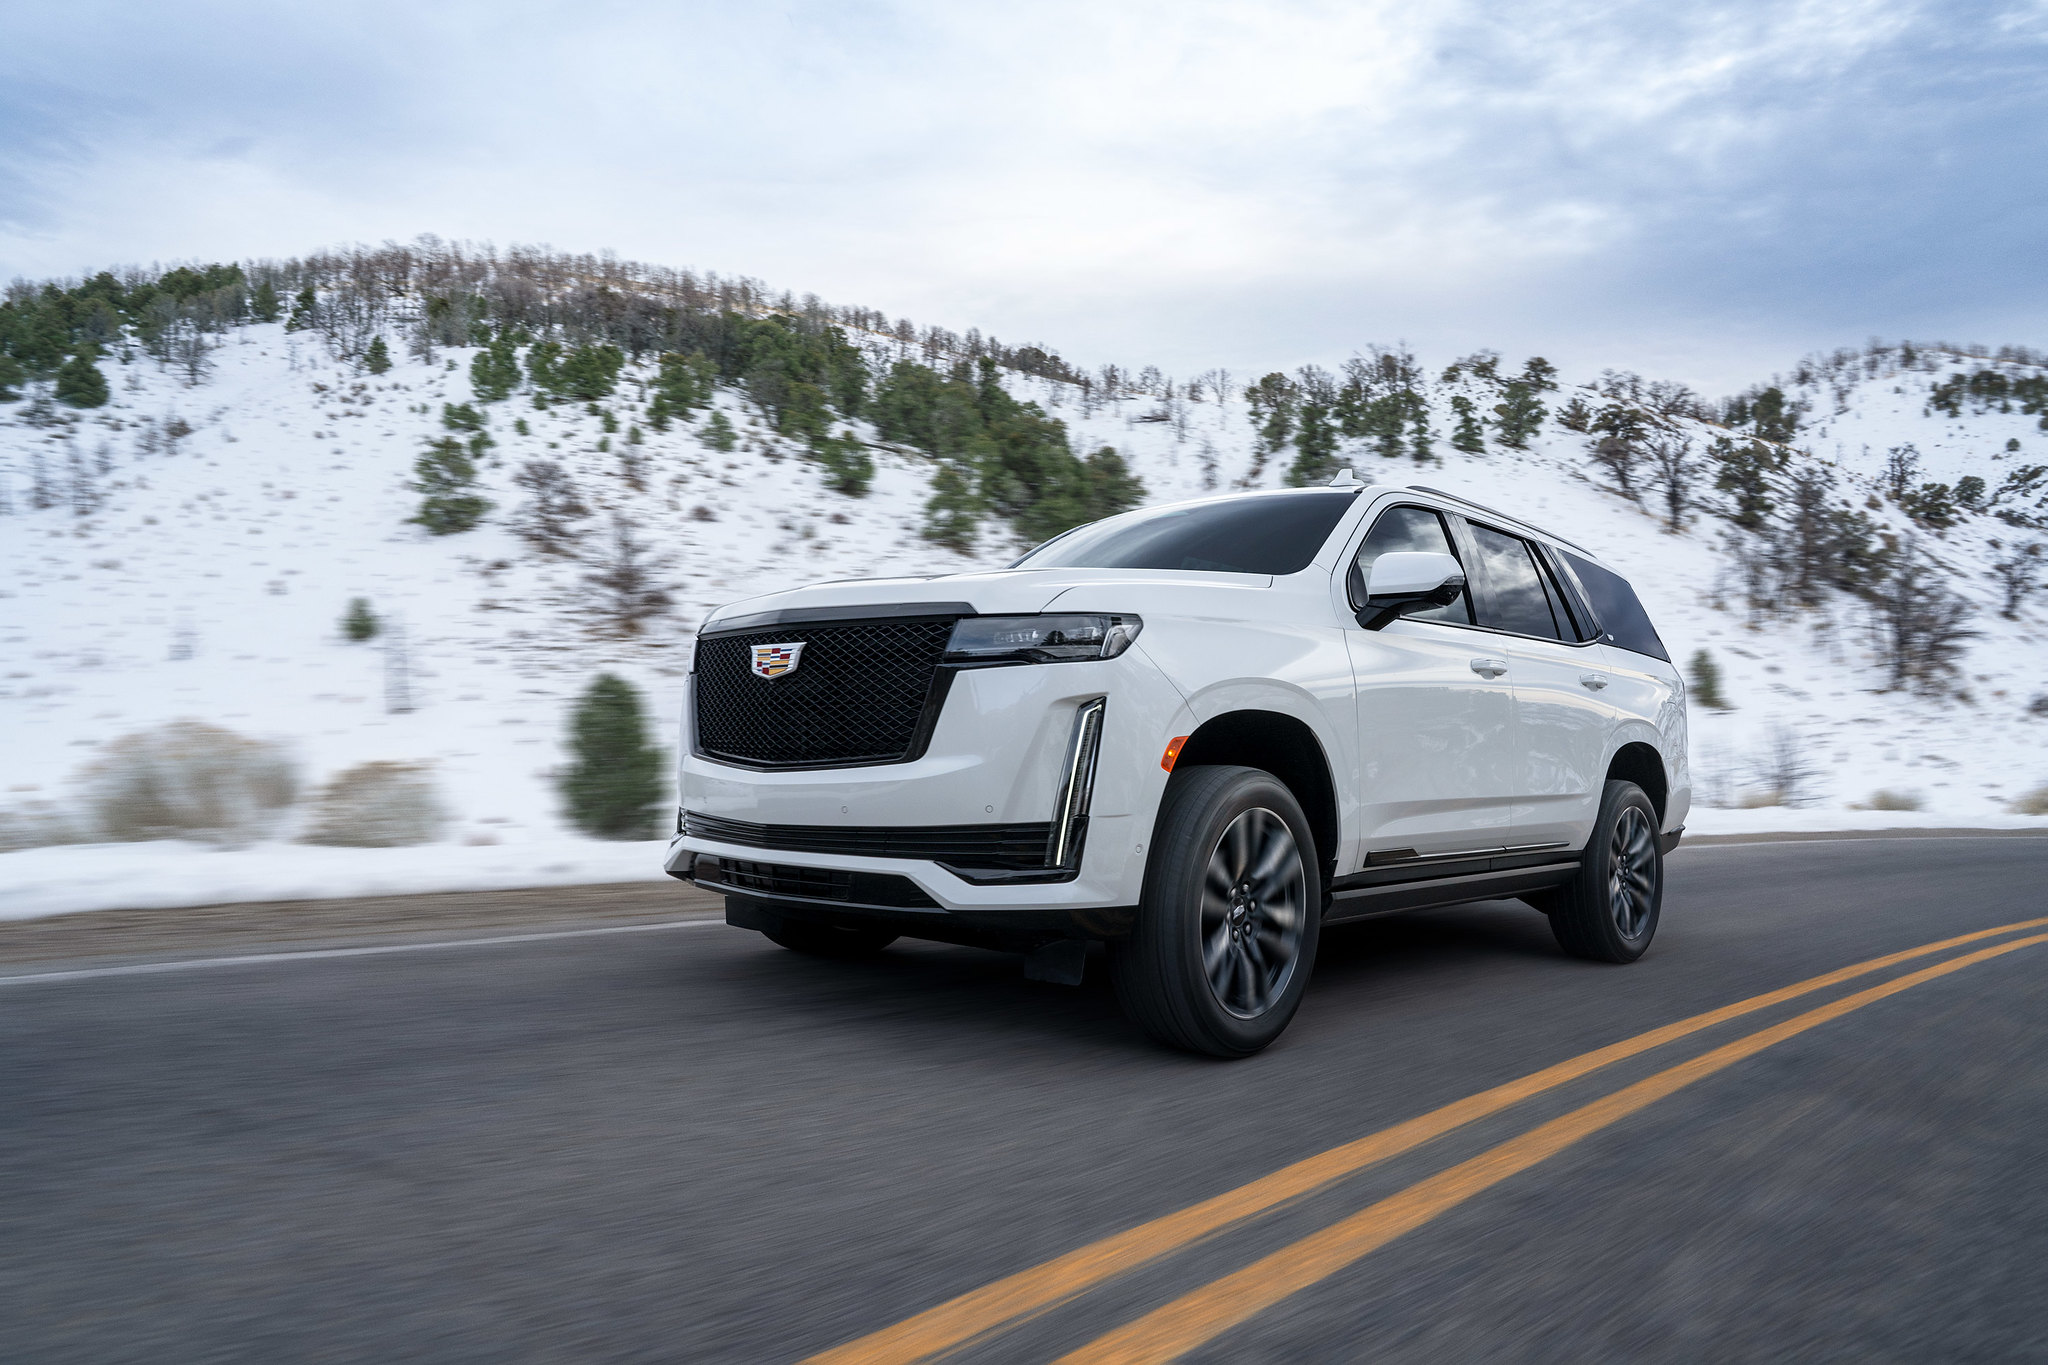 what's new for the 2021 cadillac lineup? - the news wheel